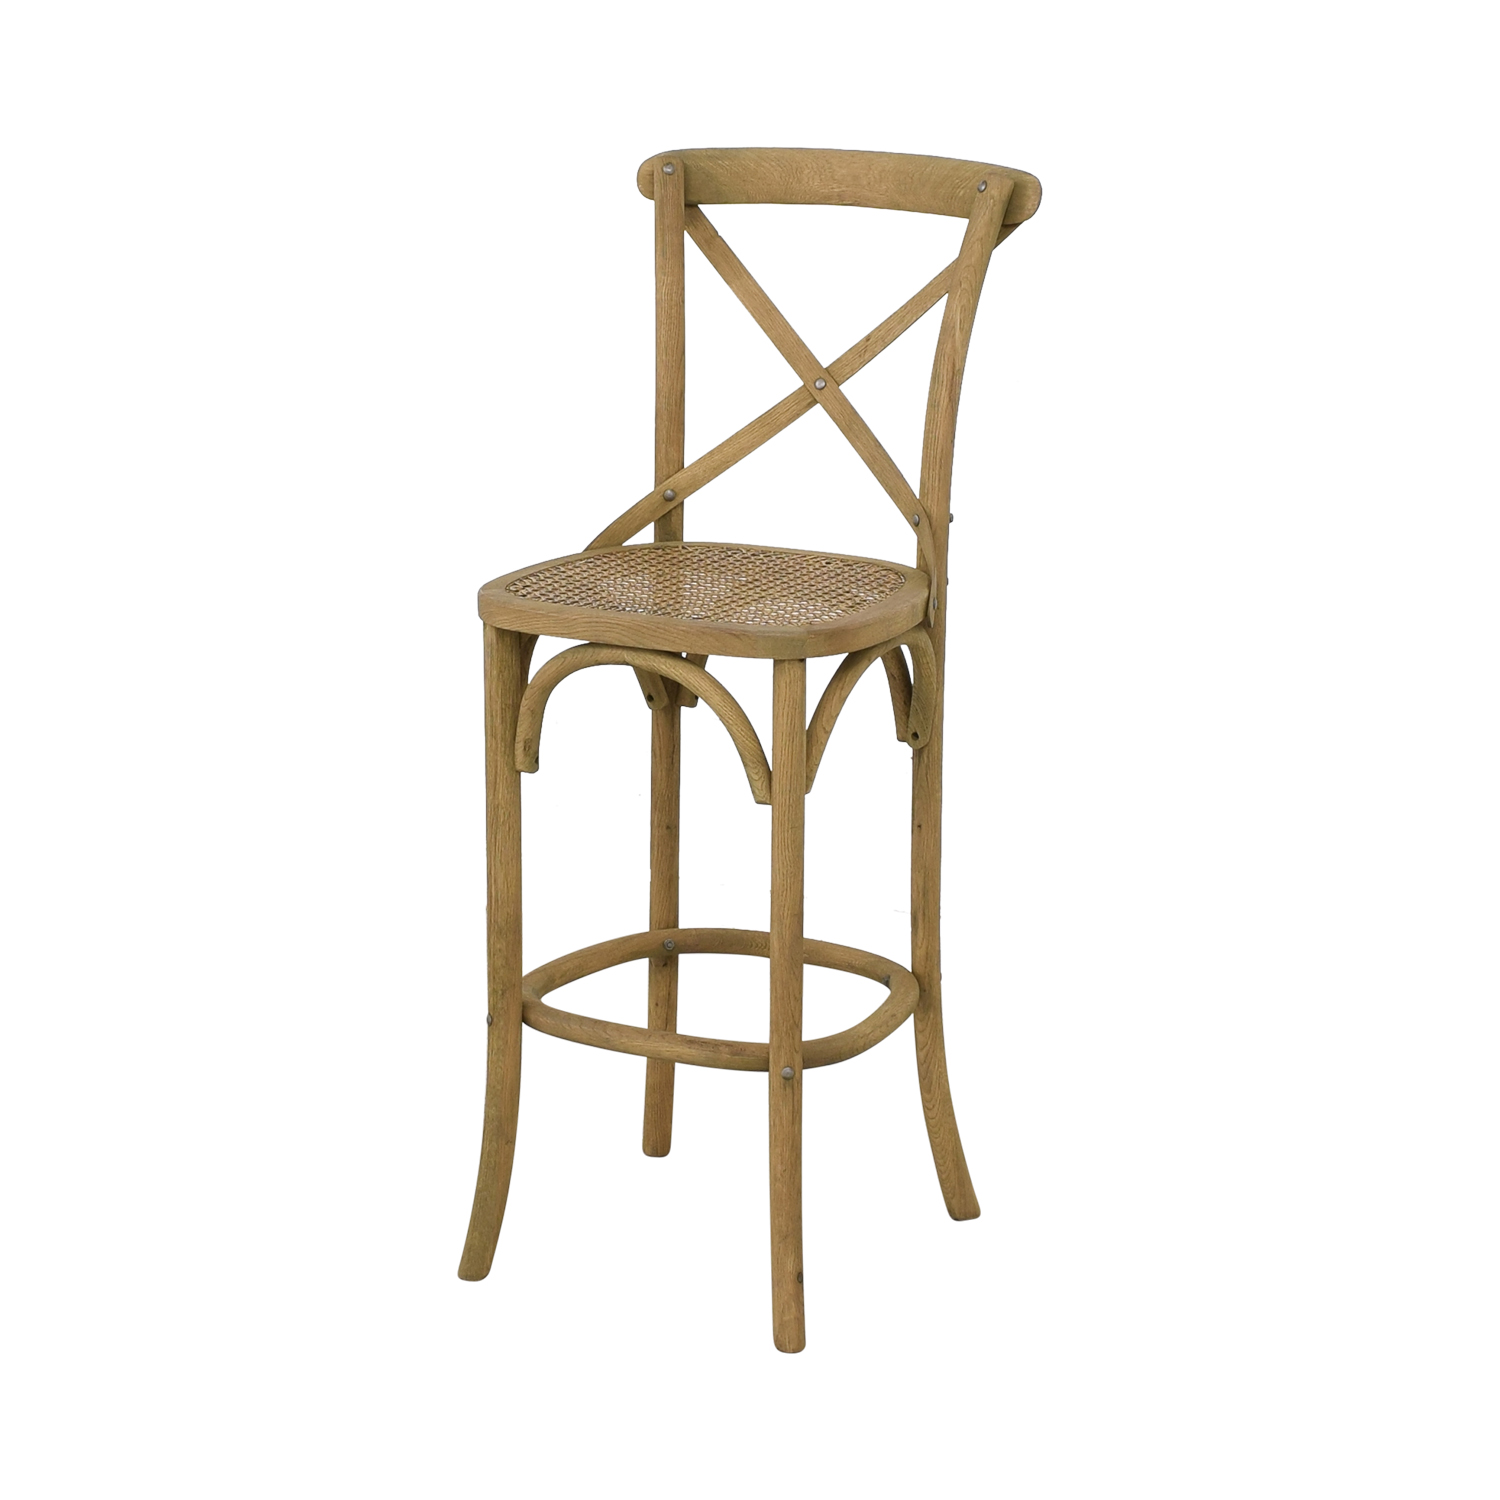 Restoration Hardware Restoration Hardware Madeleine Bar Stool on sale